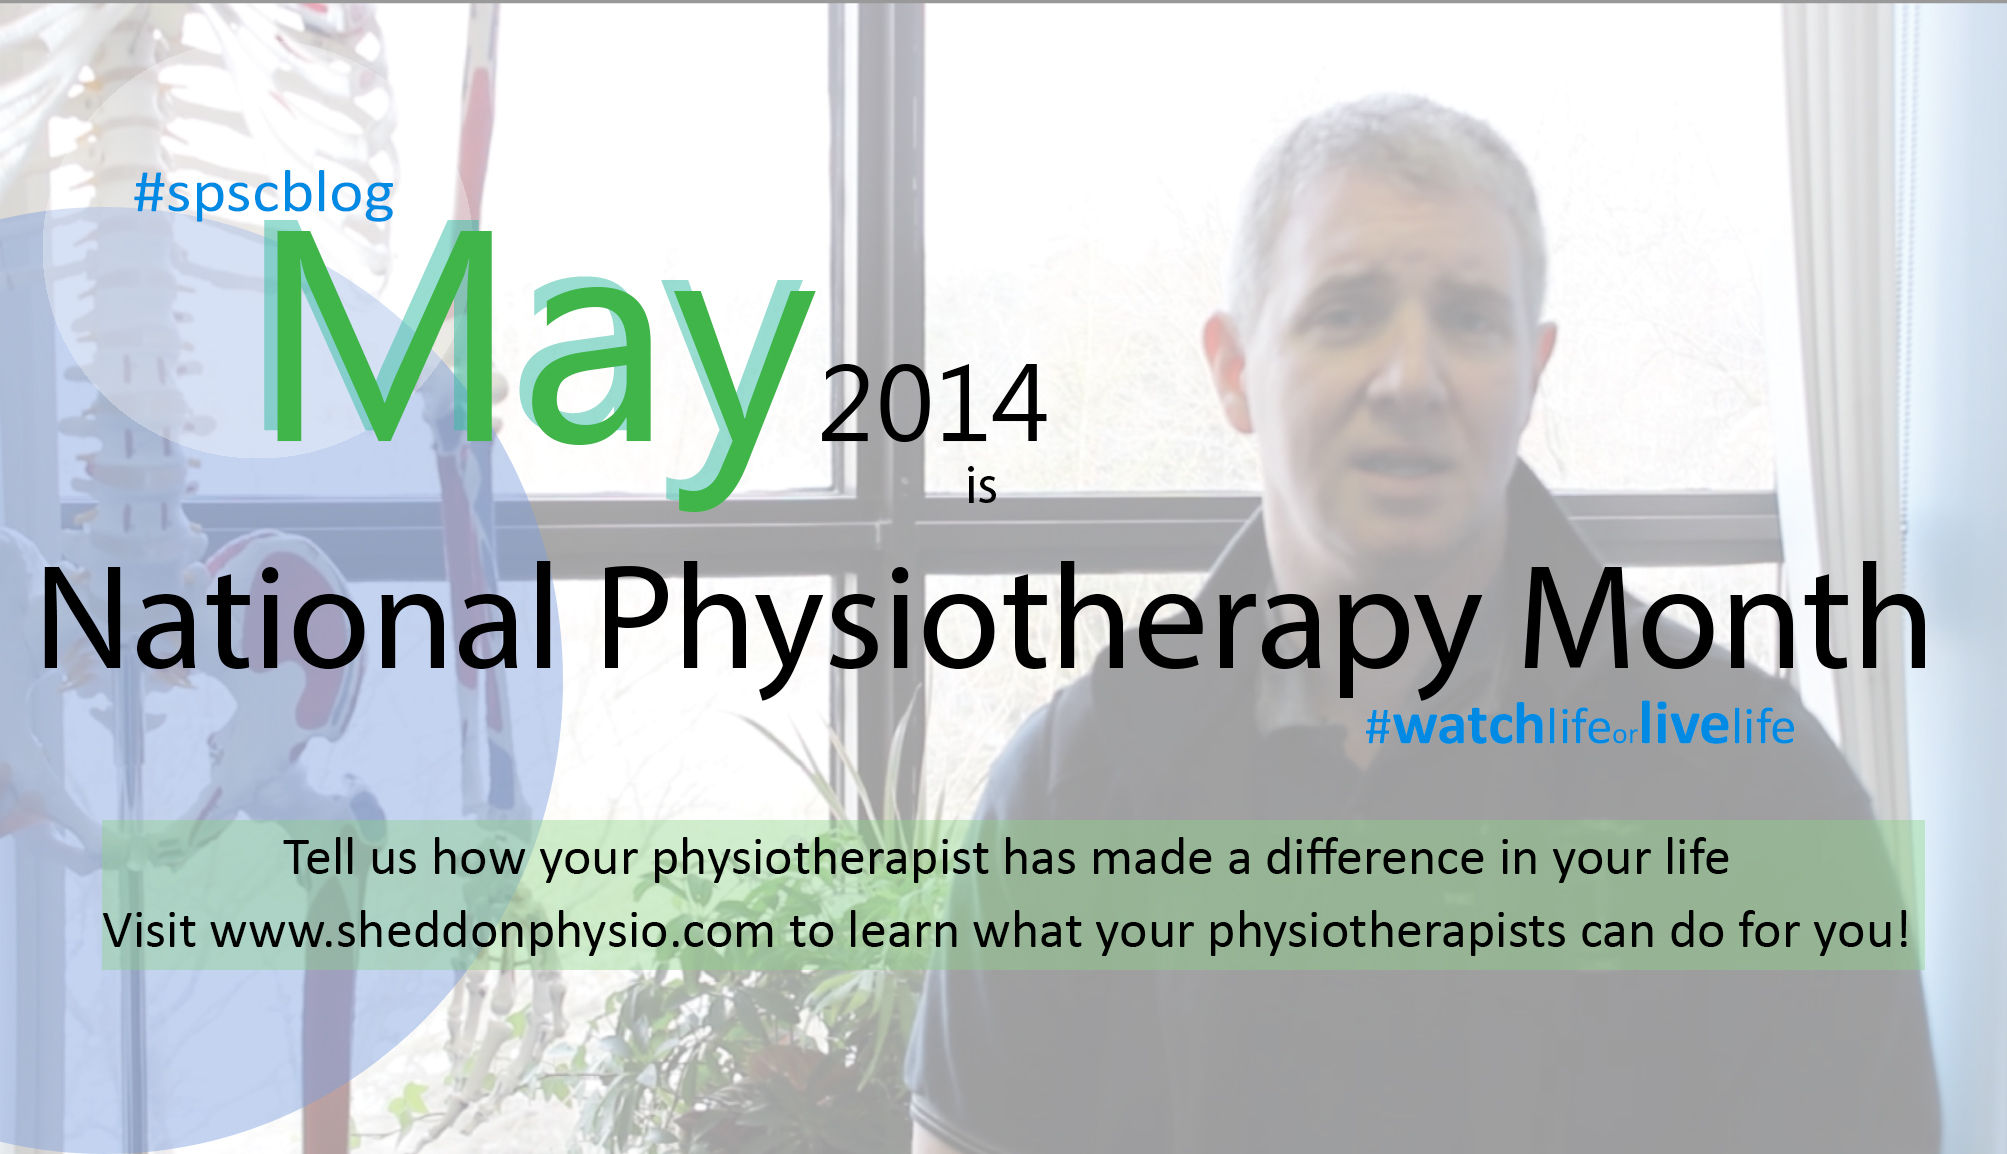 May is National Physiotherapy Month